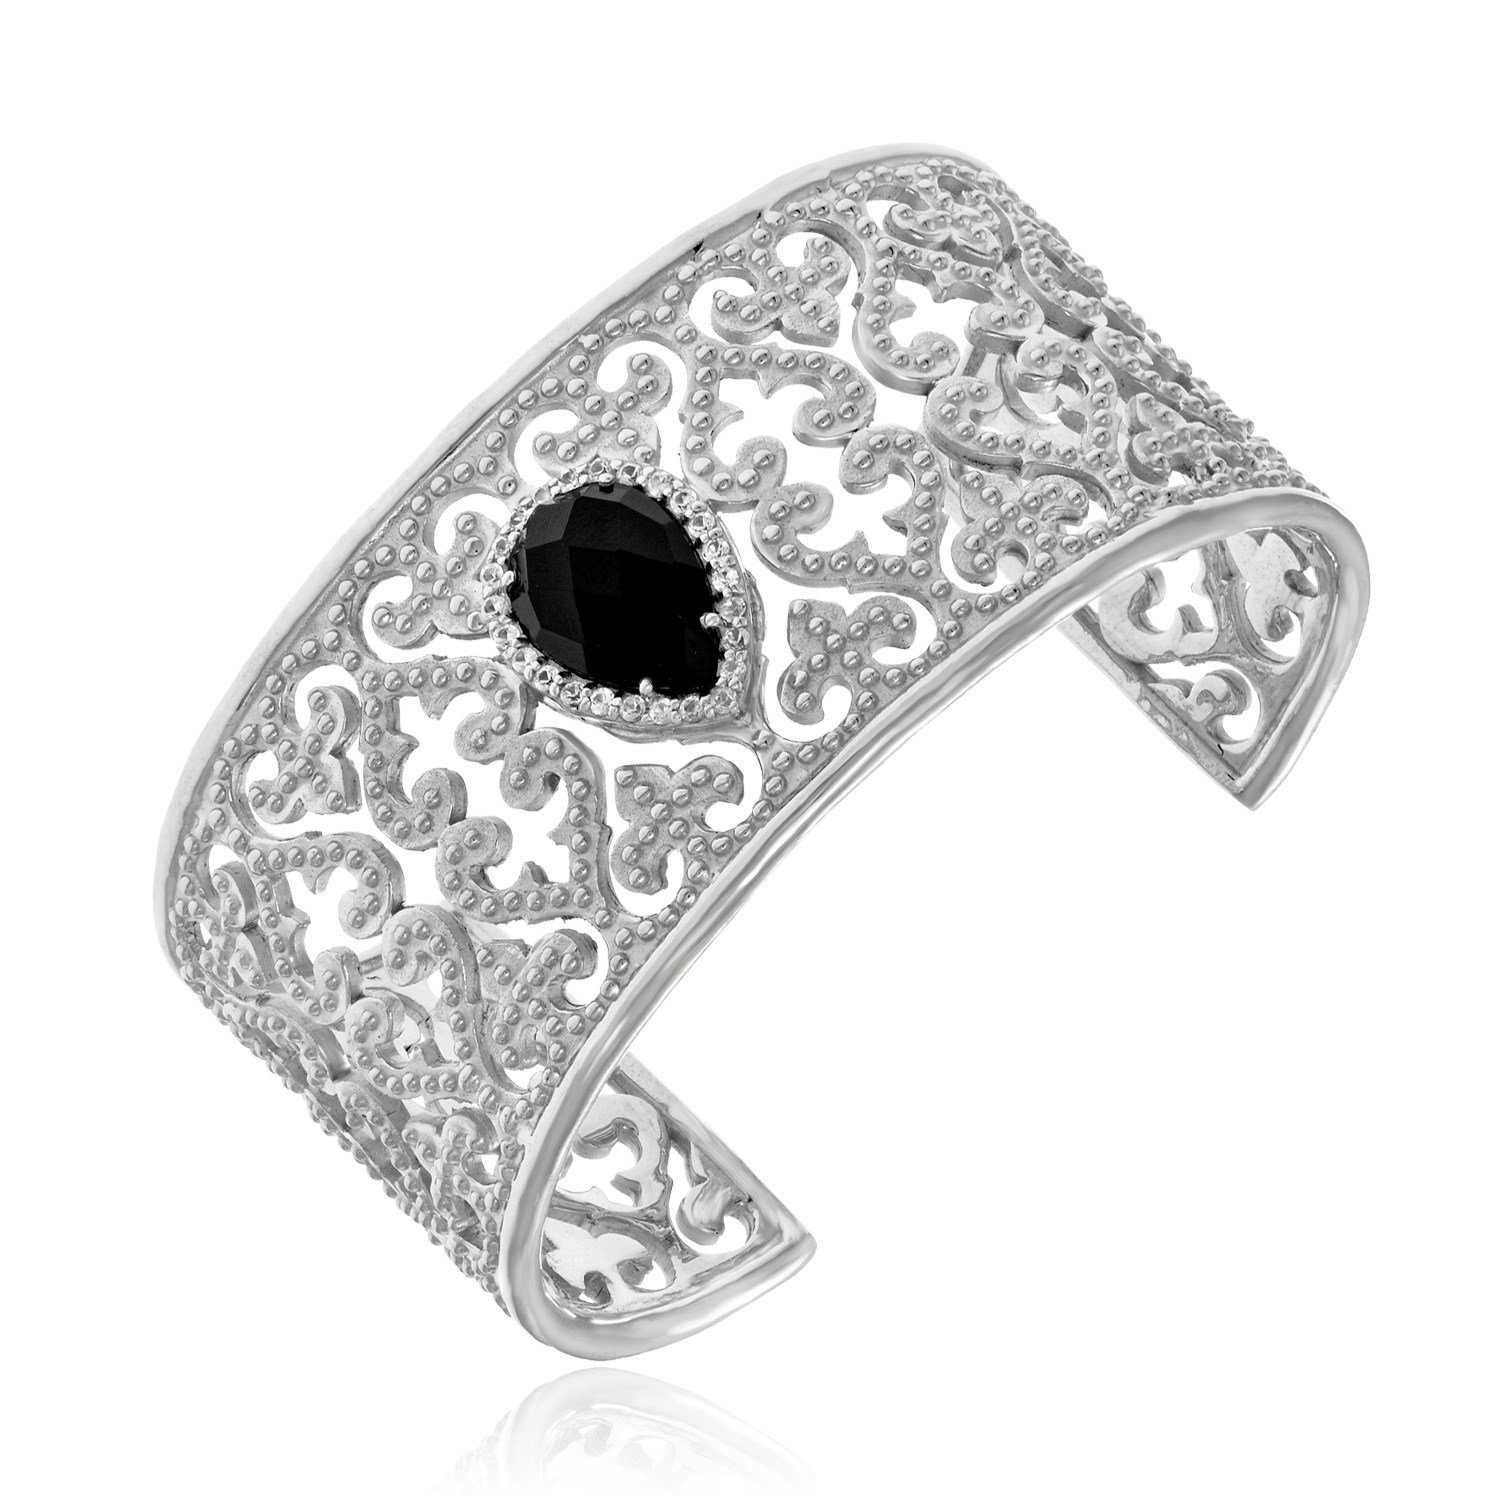 Womens 925 Sterling Silver Open Byzantine Cuff with Black Onyx and White Sapphires